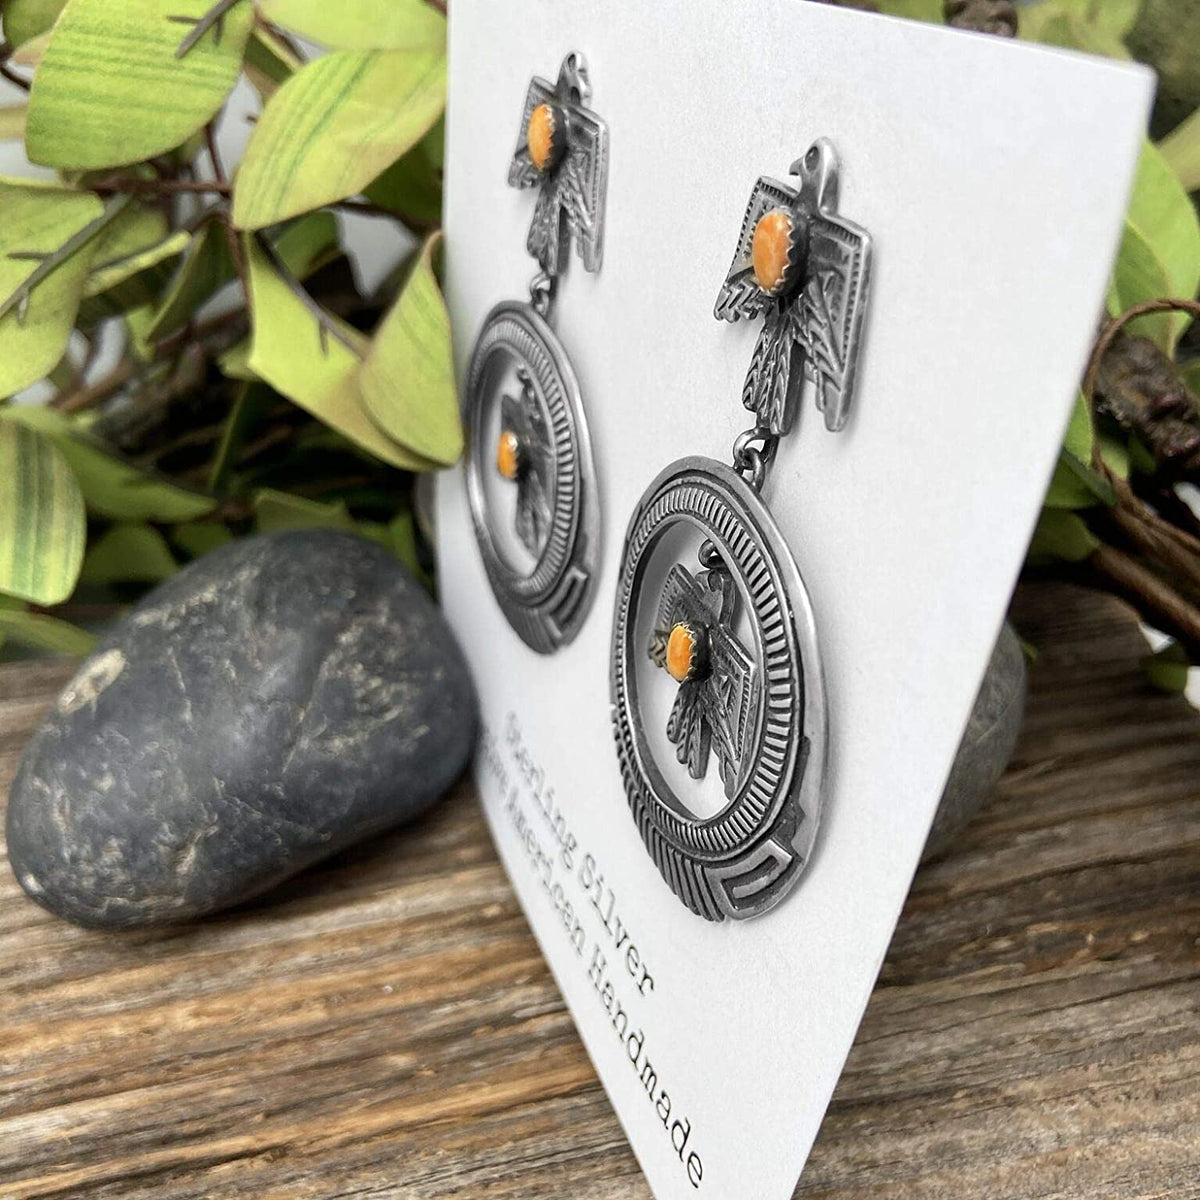 Orange Spiny Oyster Shell Statement Earrings, Thunderbird, Oxidized Sterling Silver, Authentic Navajo Native American USA Handmade, Artist Signed, Nickle Free, Southwest Vintage Style